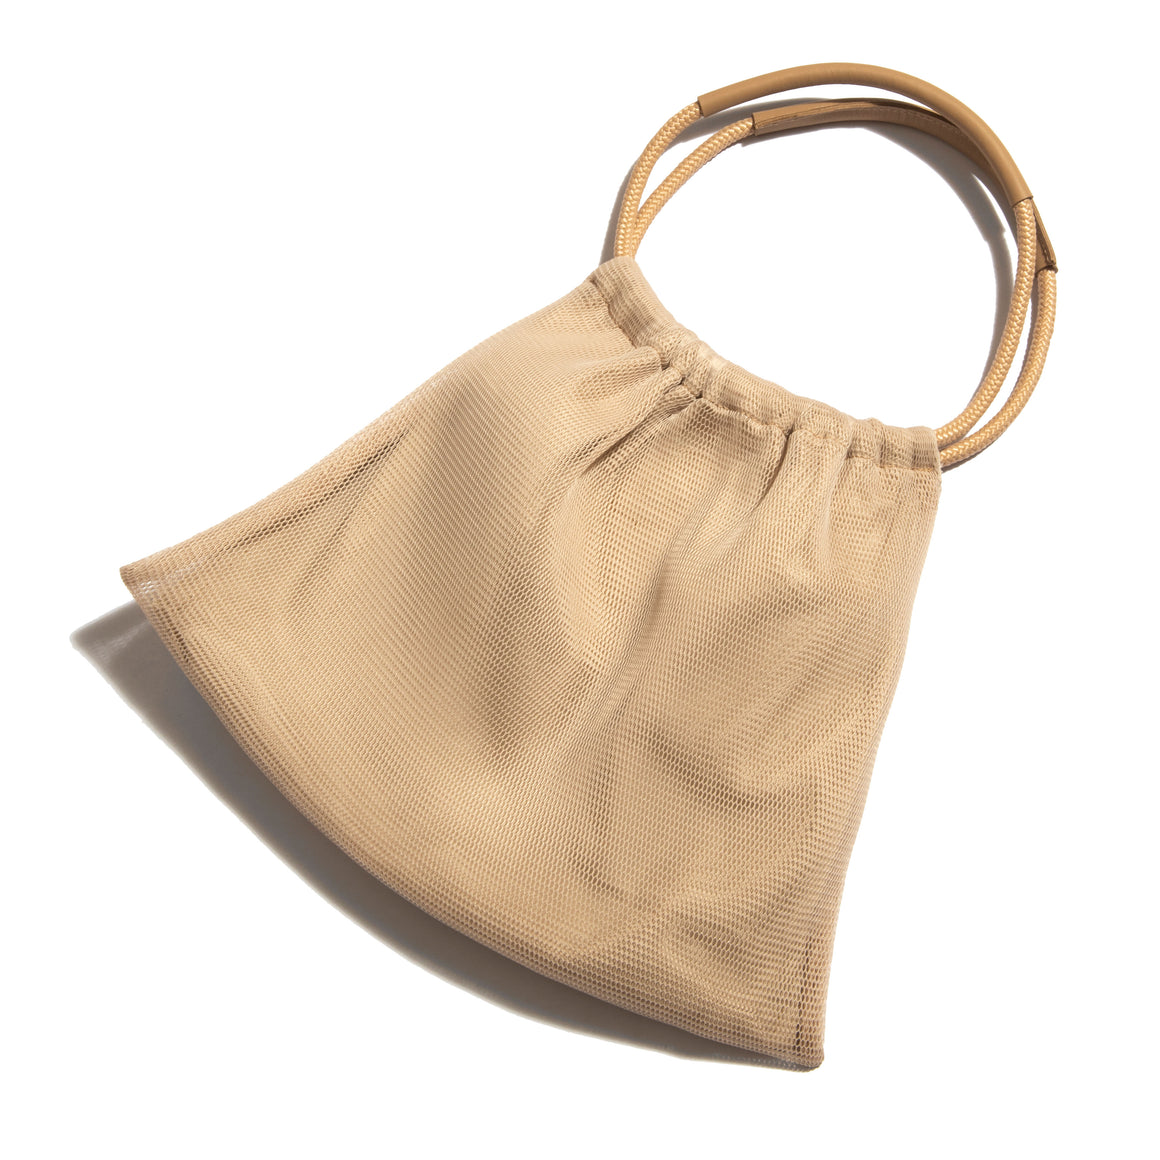 Moire Tote - Sand